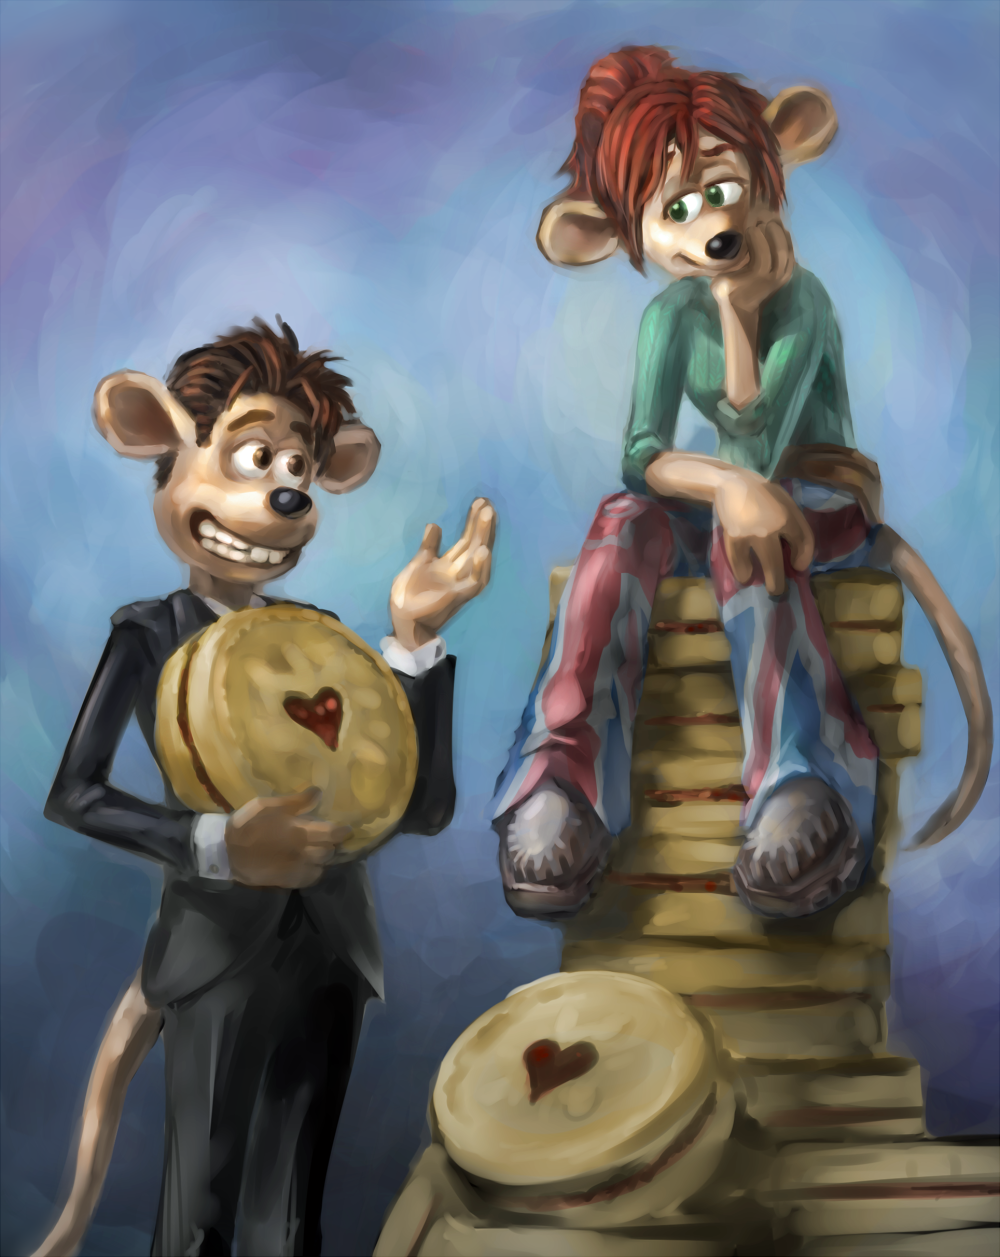 stoop_jammie_dodgers_by_stupjam-d5q12i3.png